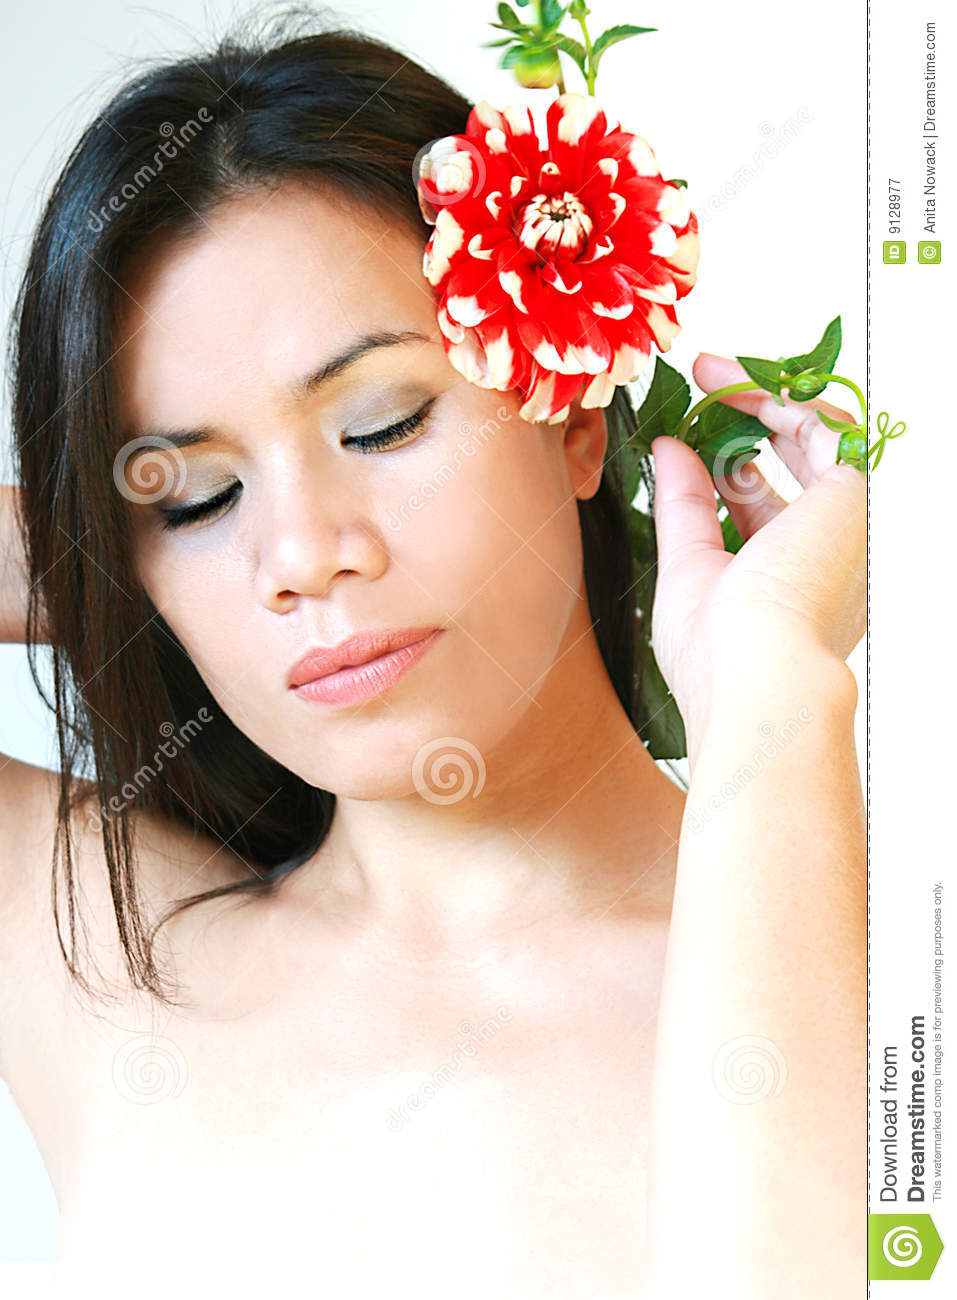 Wellness girl with red flower